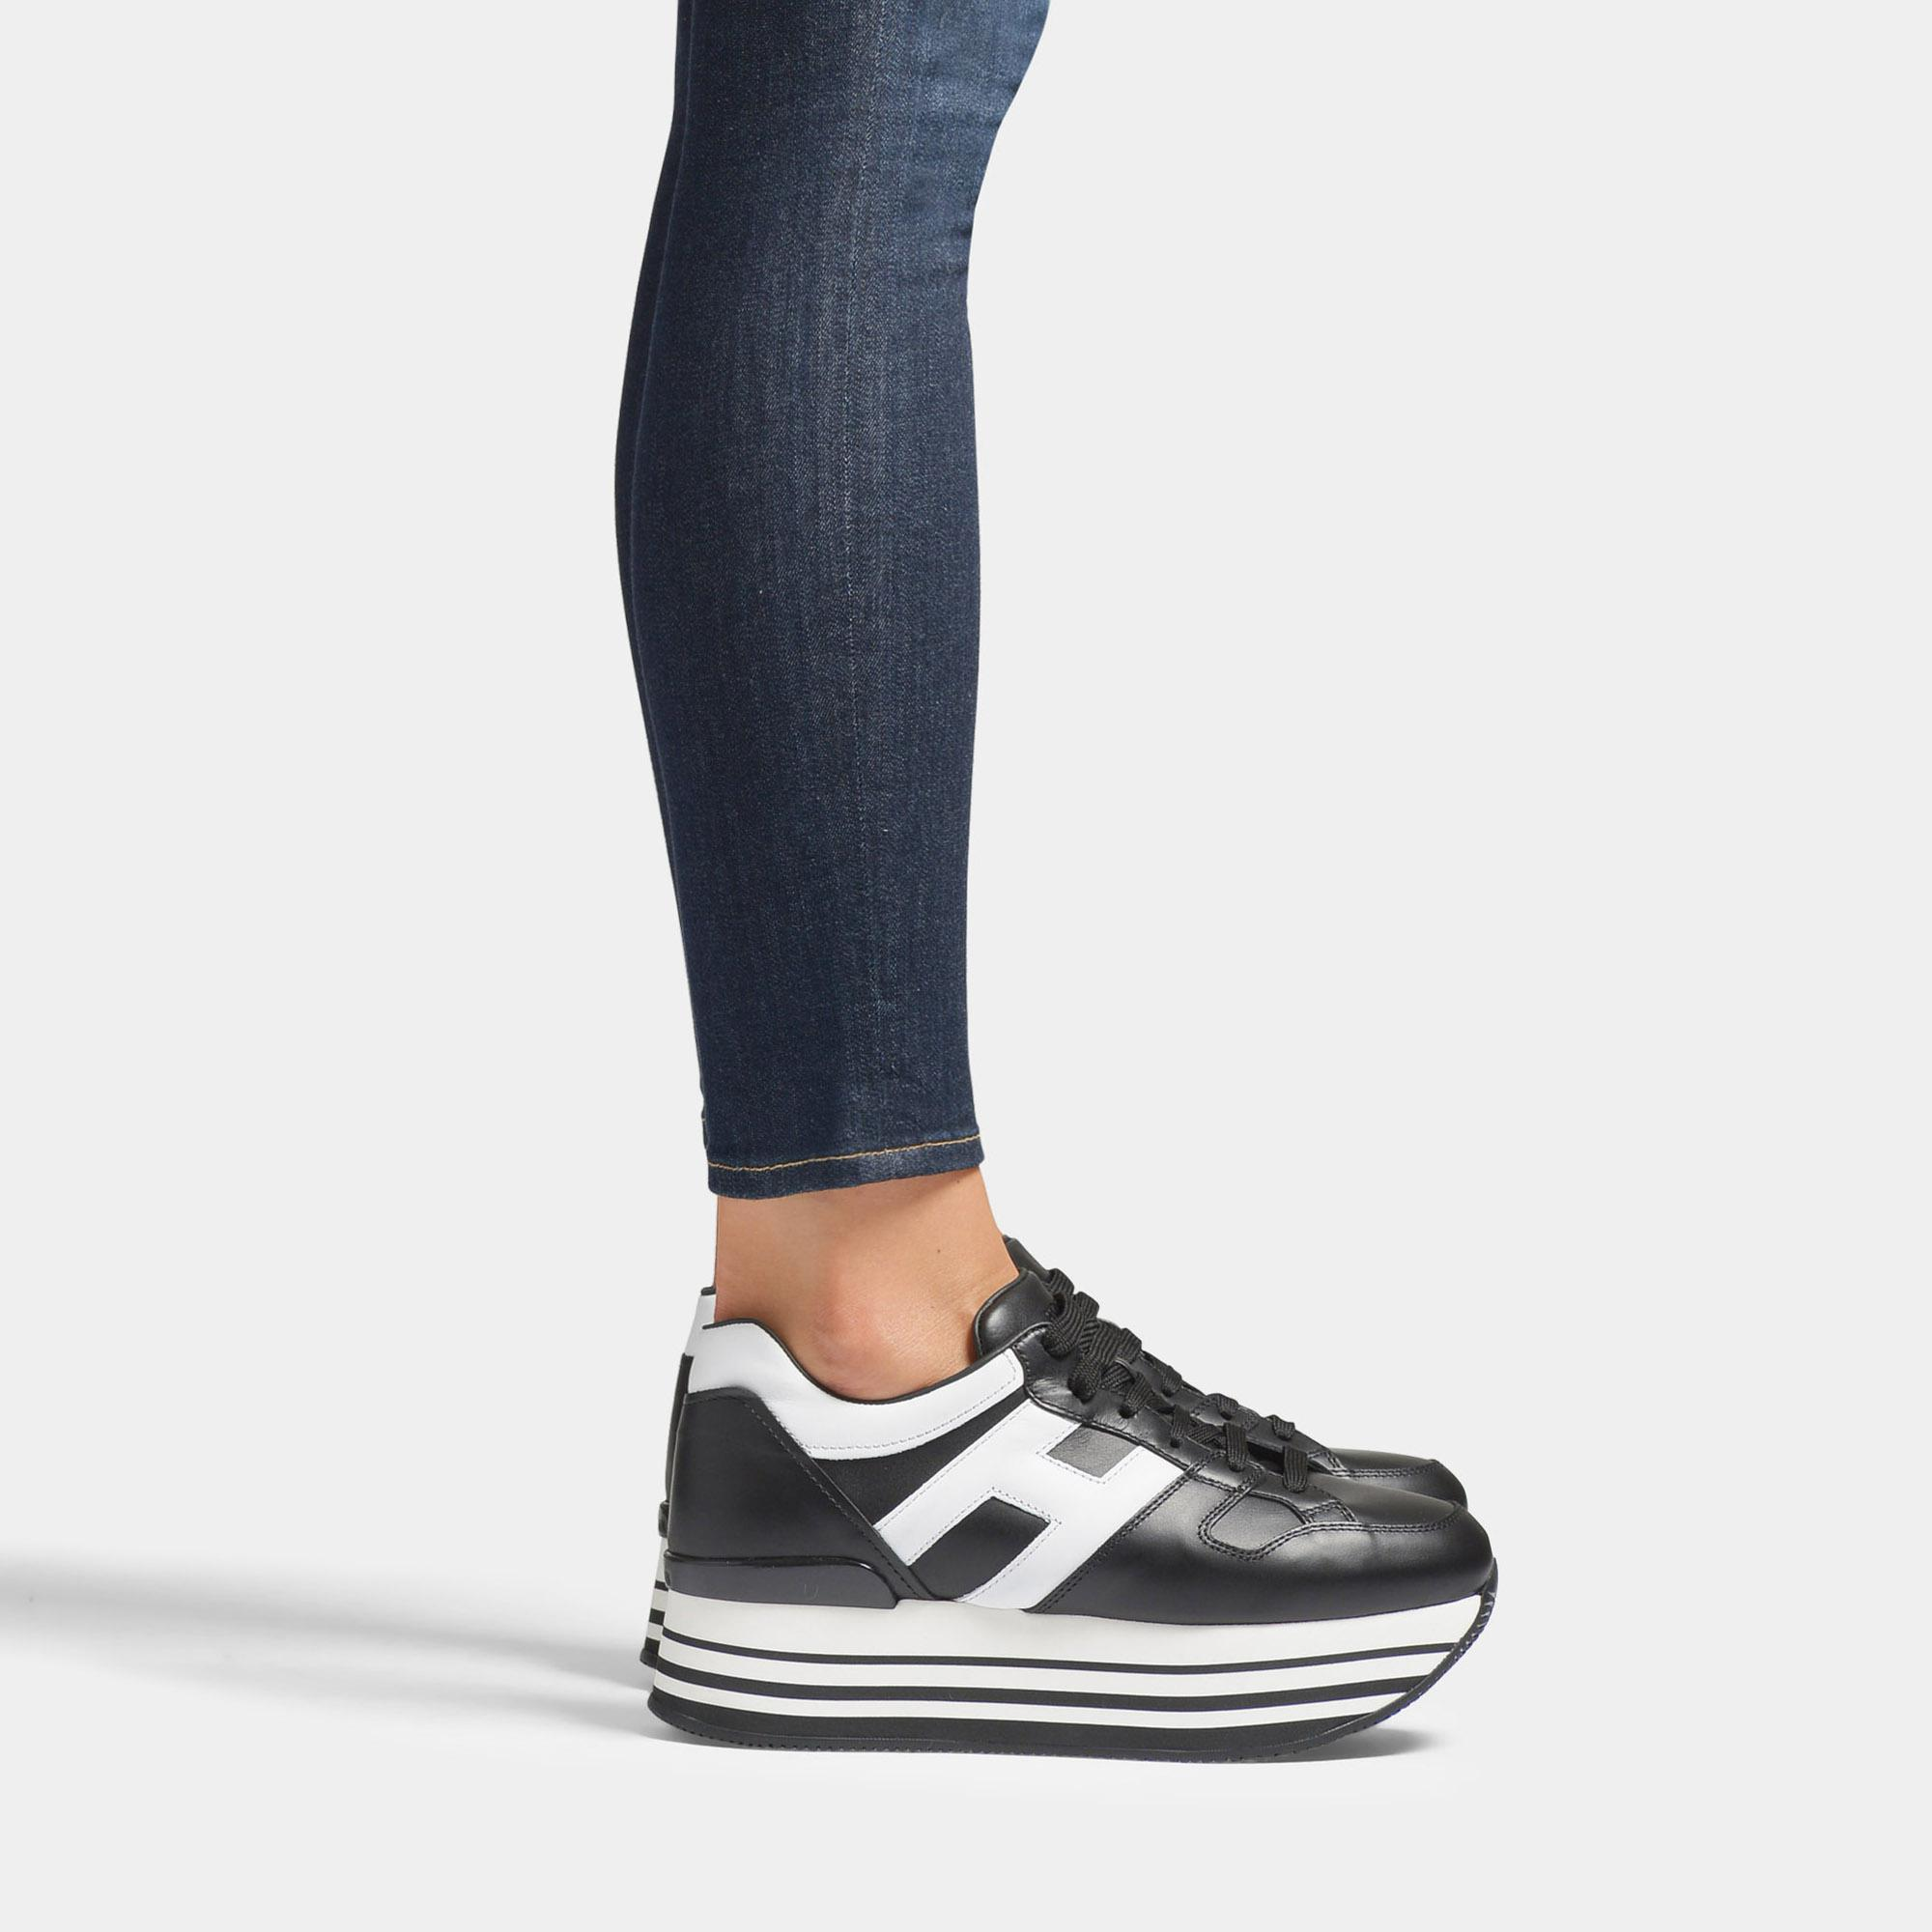 Hogan Maxi Platform Sneakers In Black And White Smooth Calfskin - Lyst